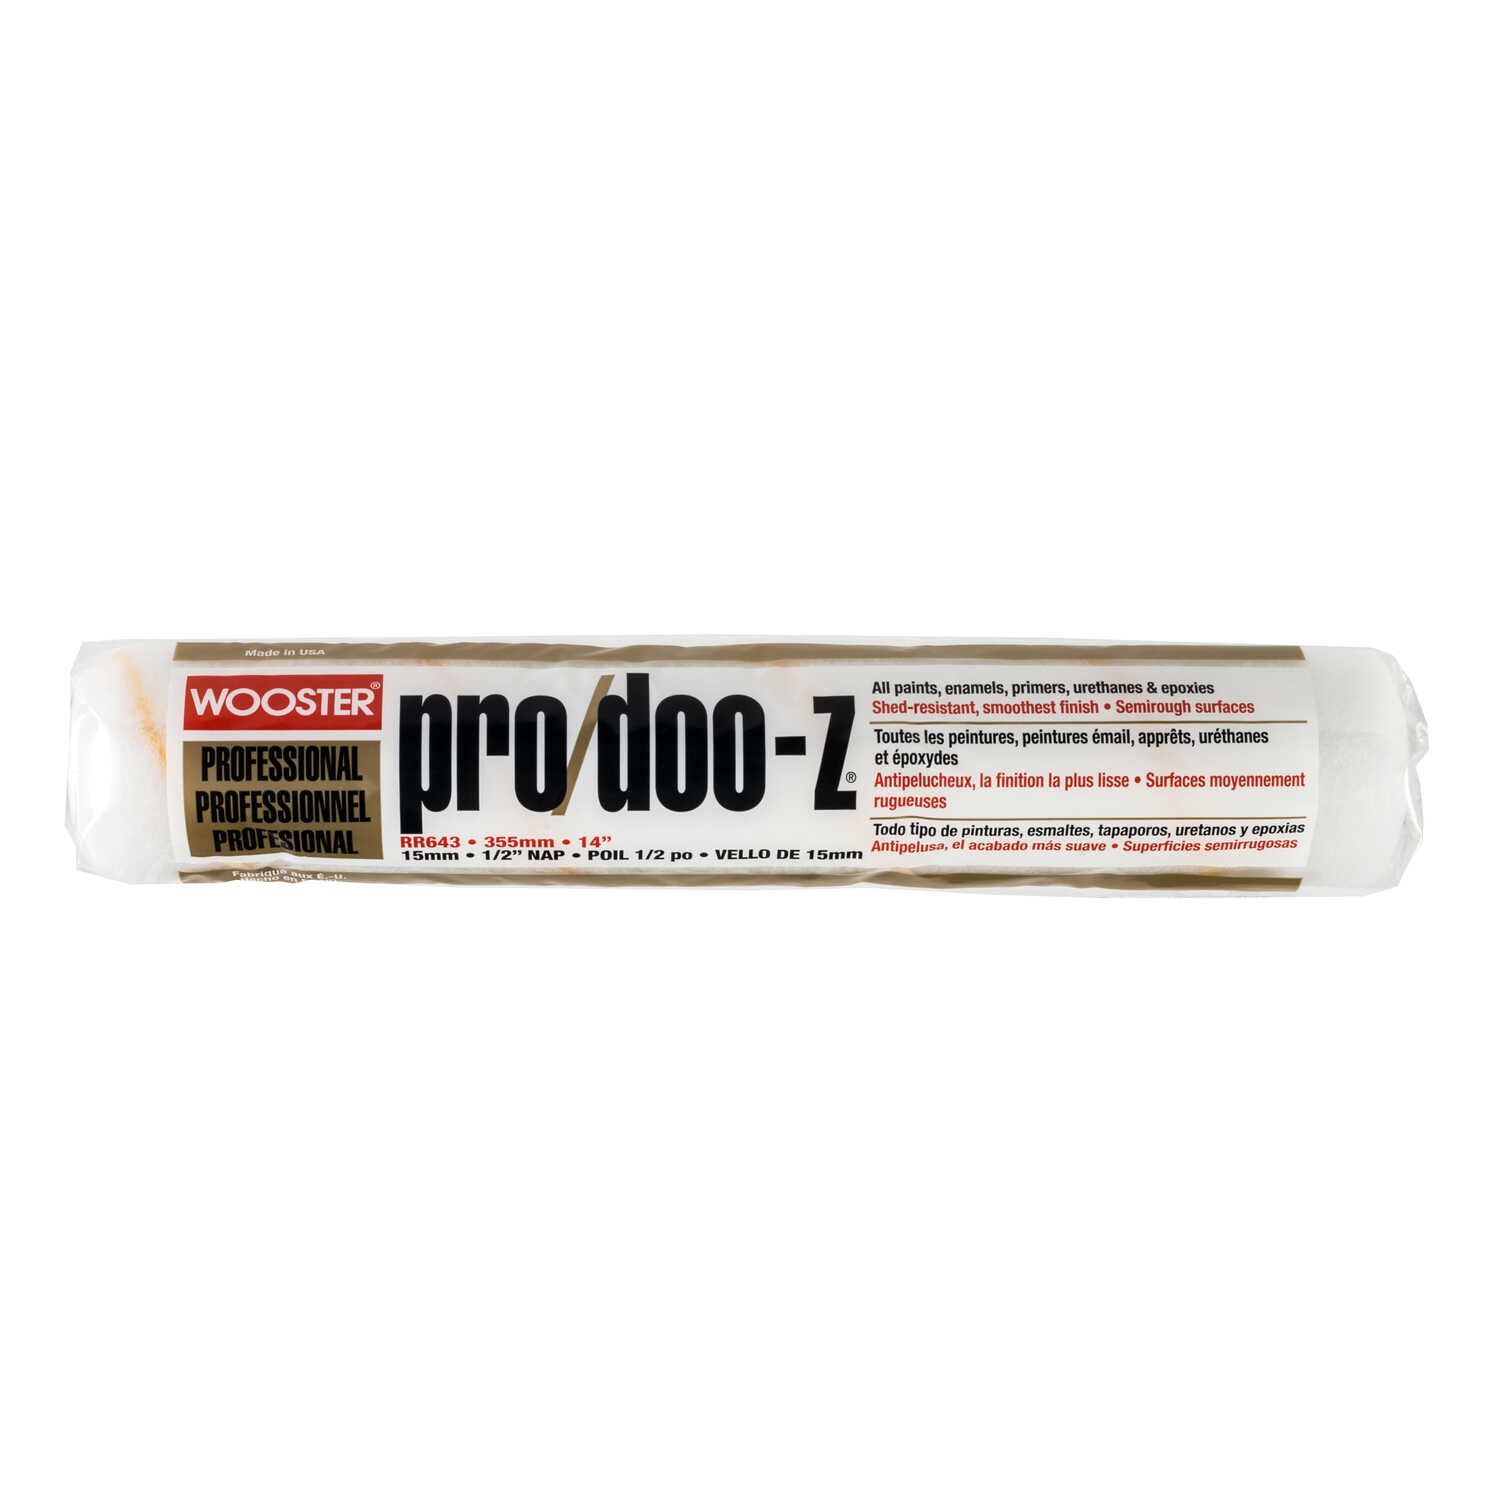 Wooster  Pro/Doo-Z  Synthetic Blend  1/2 in.  x 14 in. W Regular  Paint Roller Cover  For Semi-Rough